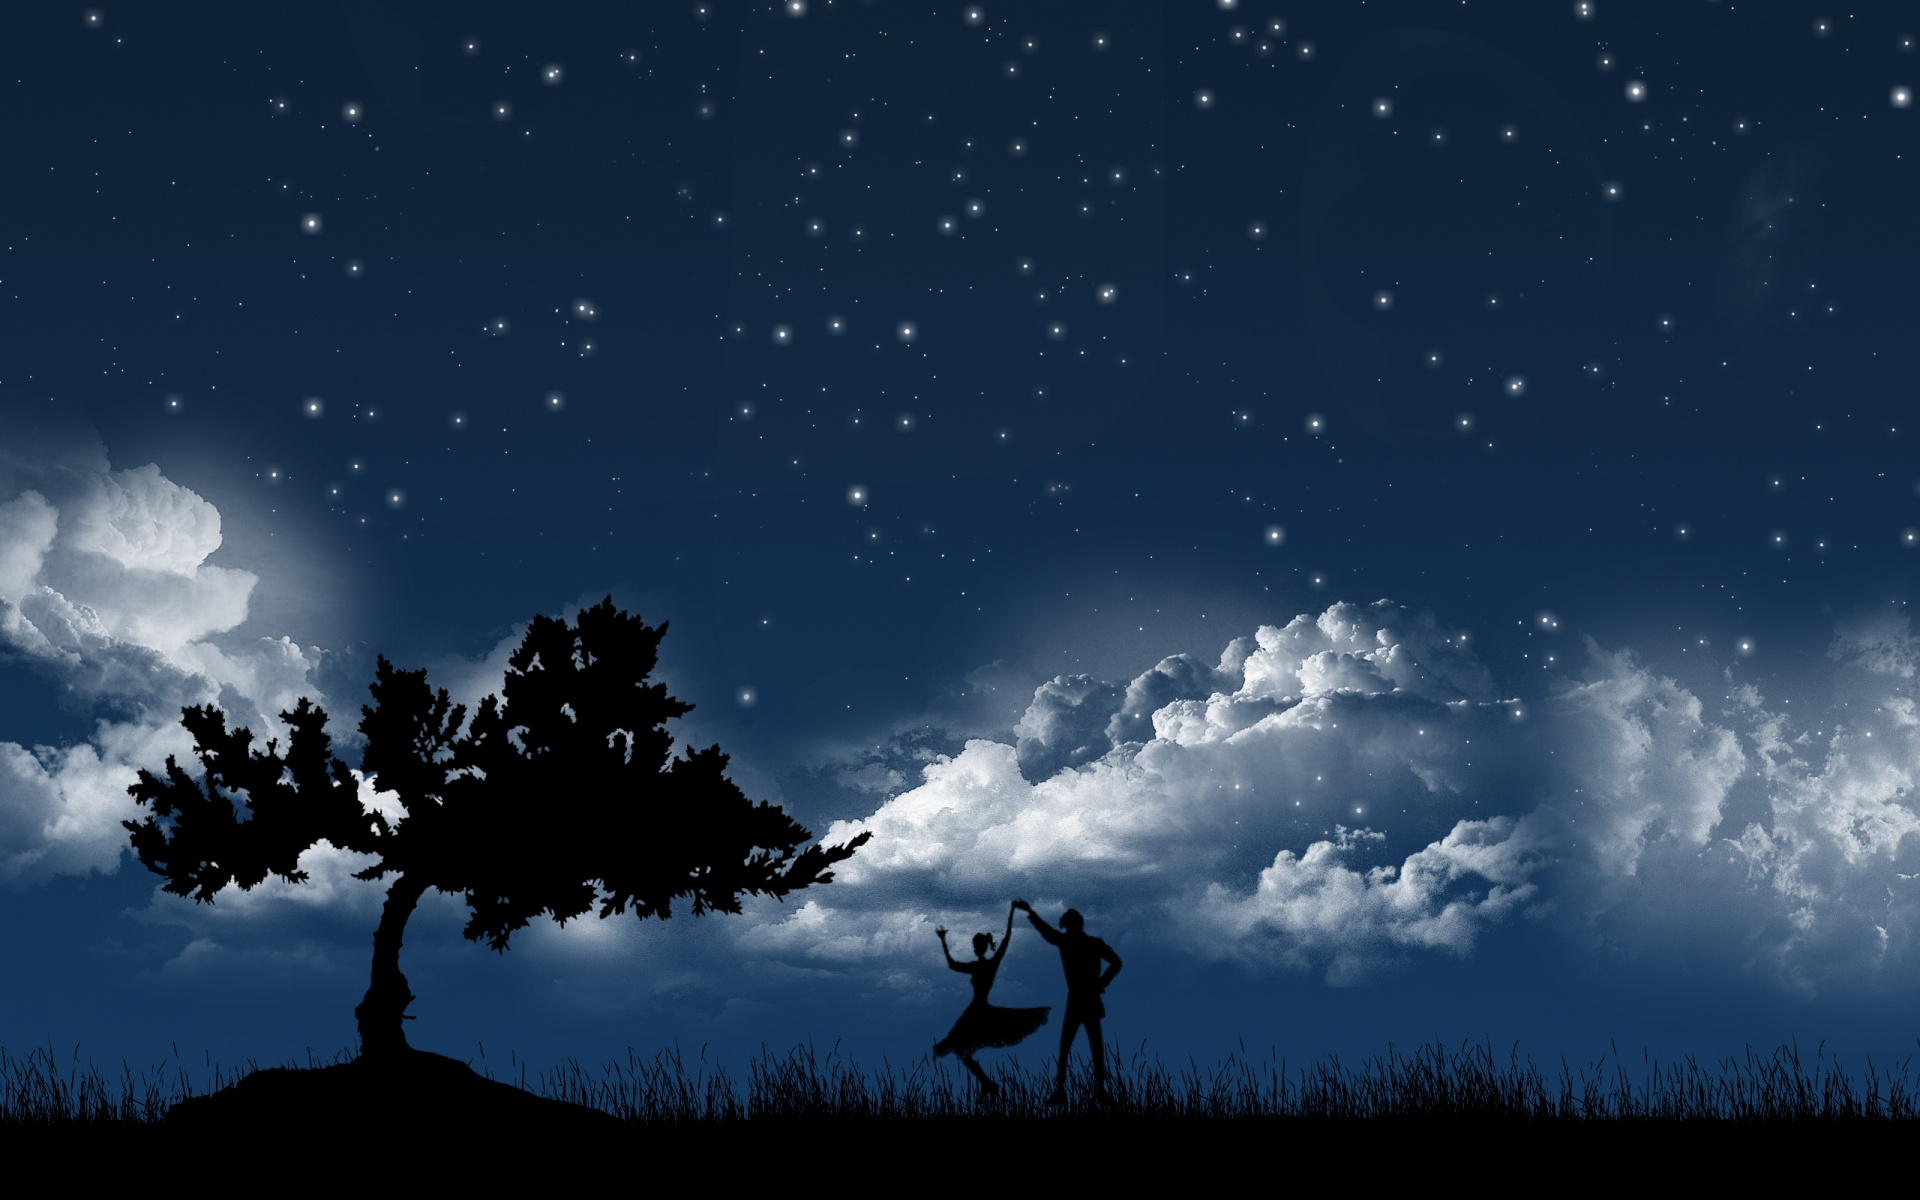 dancing-in-moonlight_wallpapers_7225_1920x1200.jpg